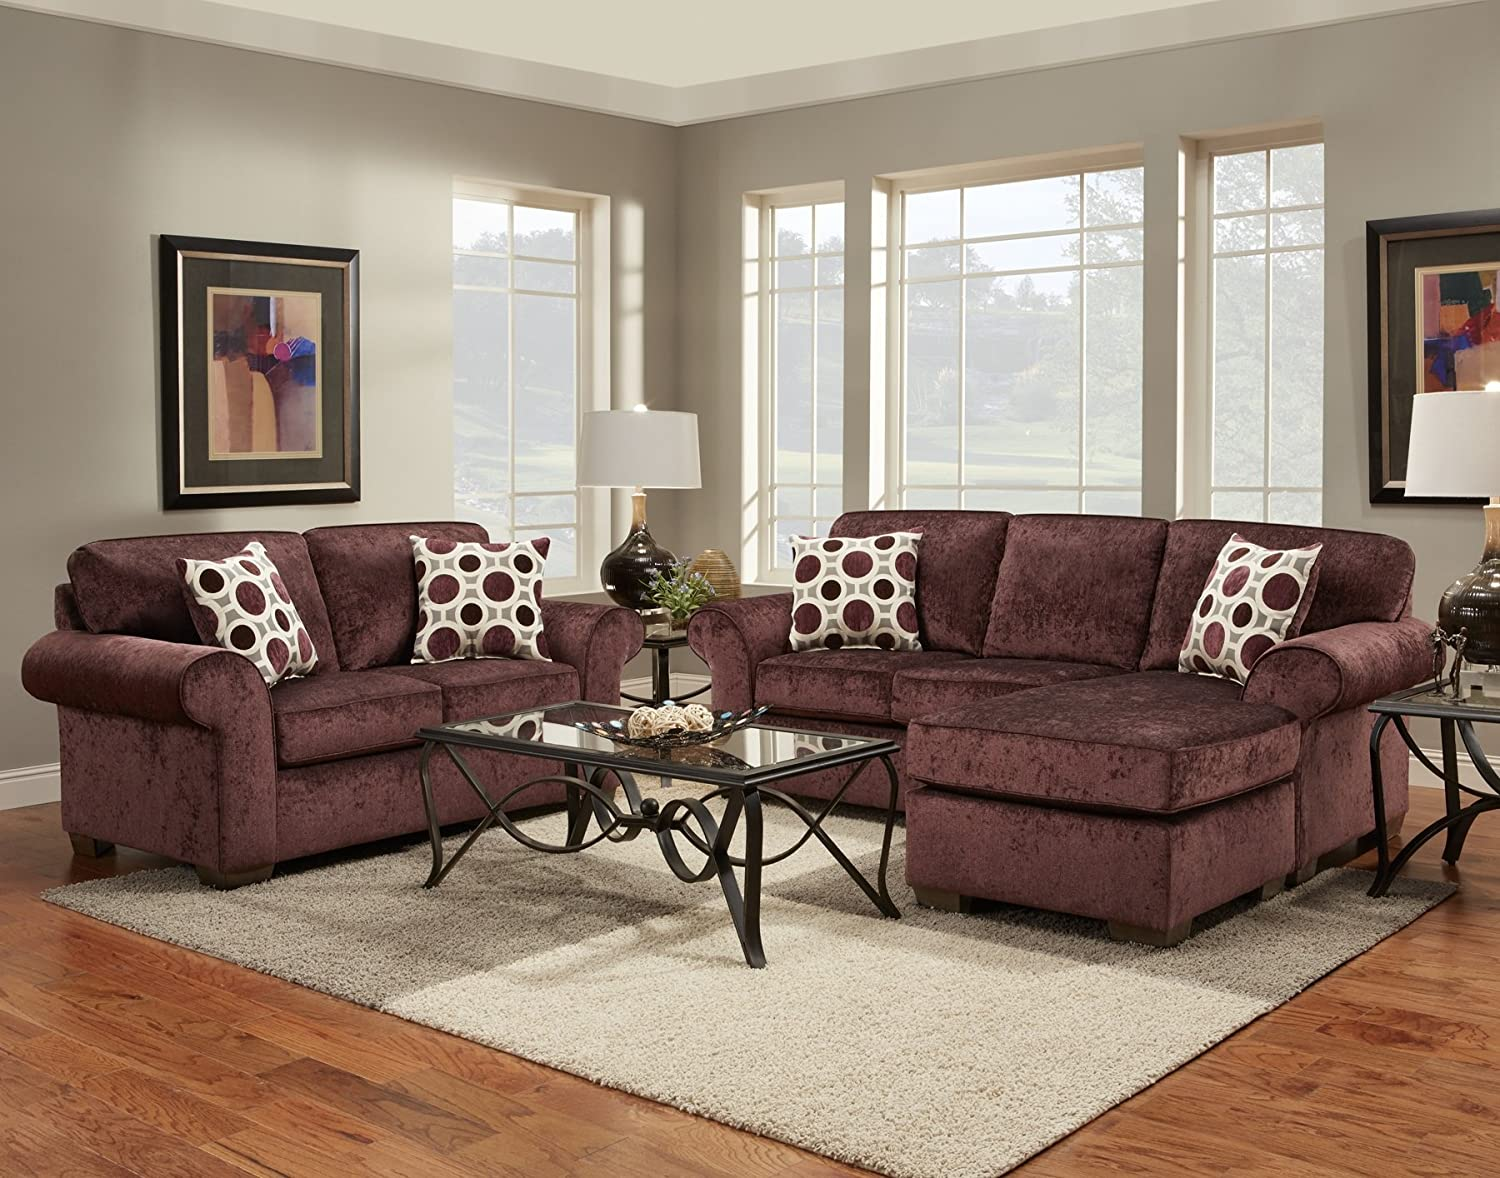 Roundhill Furniture Fabric Loveseat with 2 Pillows - Prism Elderberry